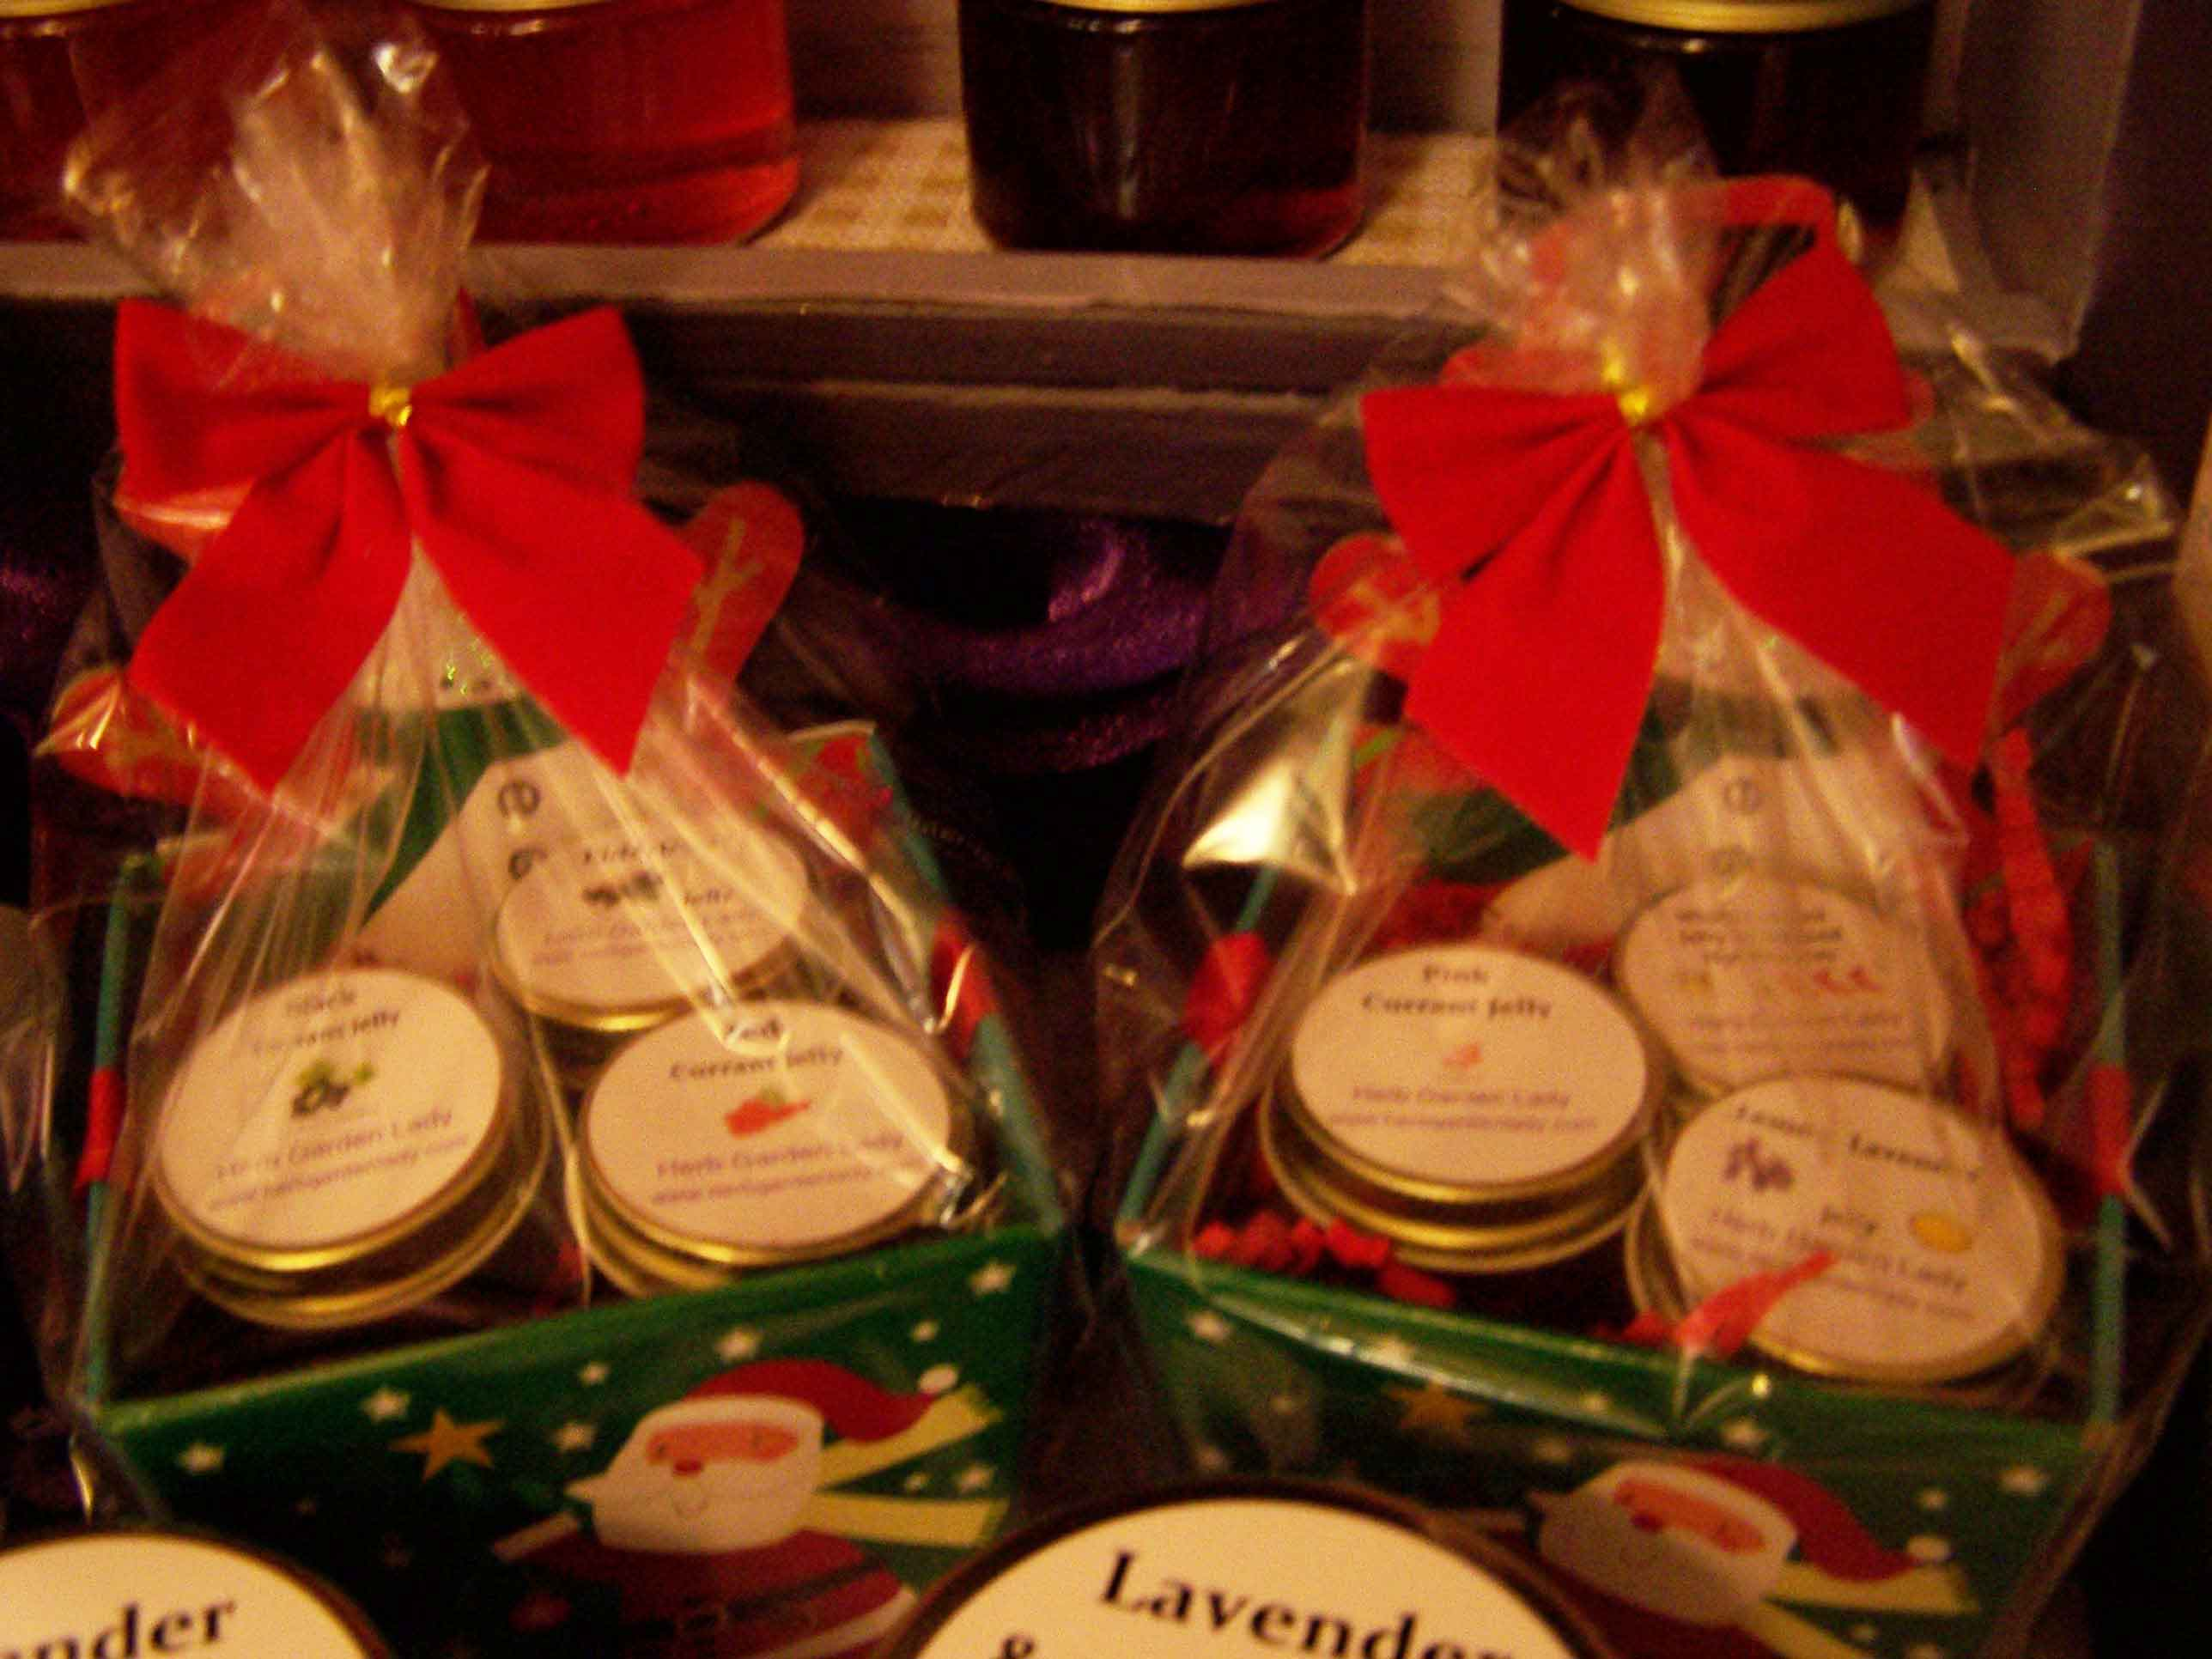 Holiday craft show at the St. John the Evangelist in Northfield, VT by Herb Garden Lady